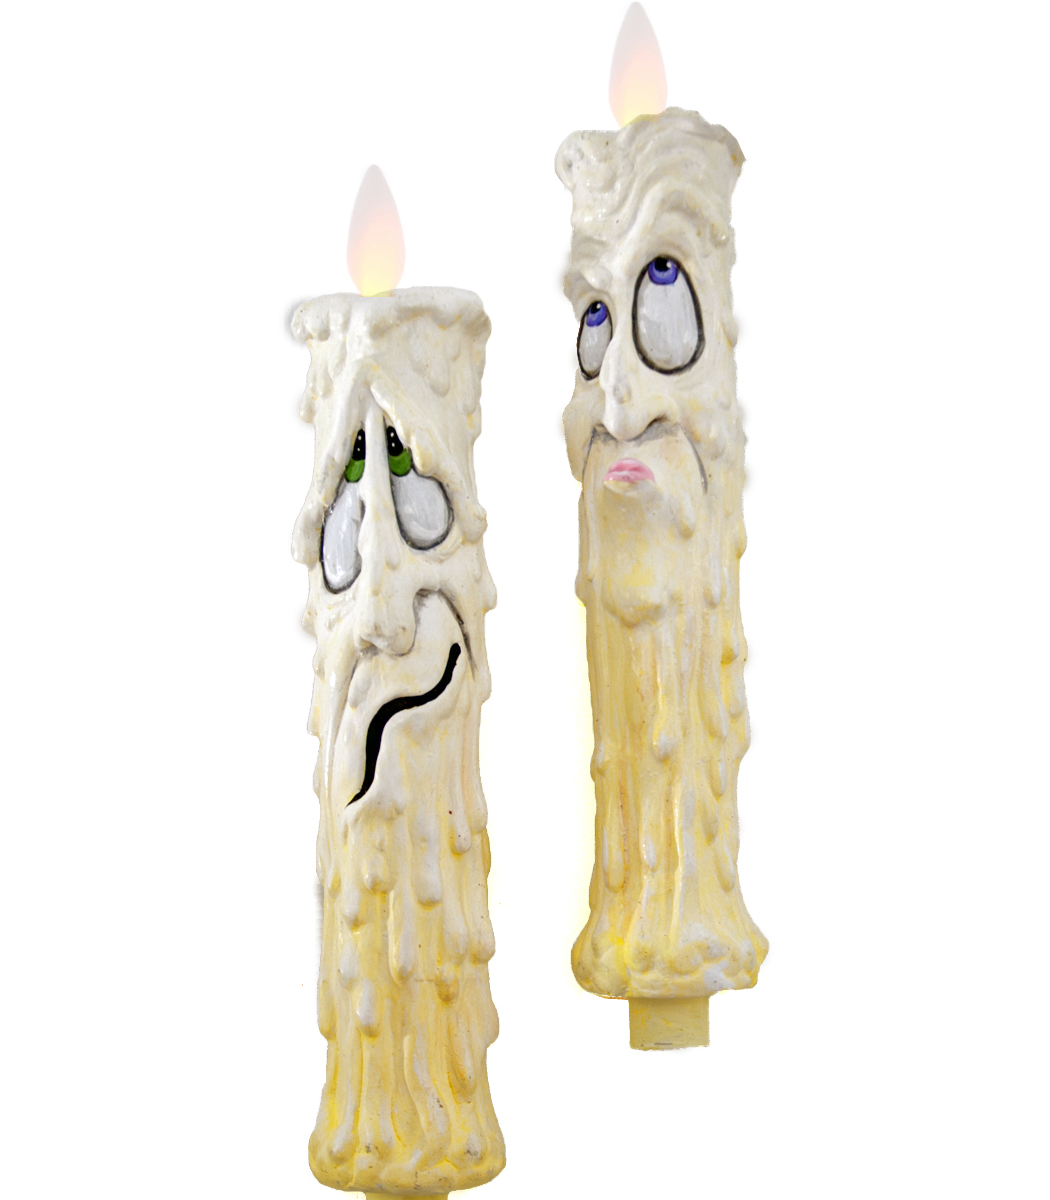 Magical Moody Candlesticks